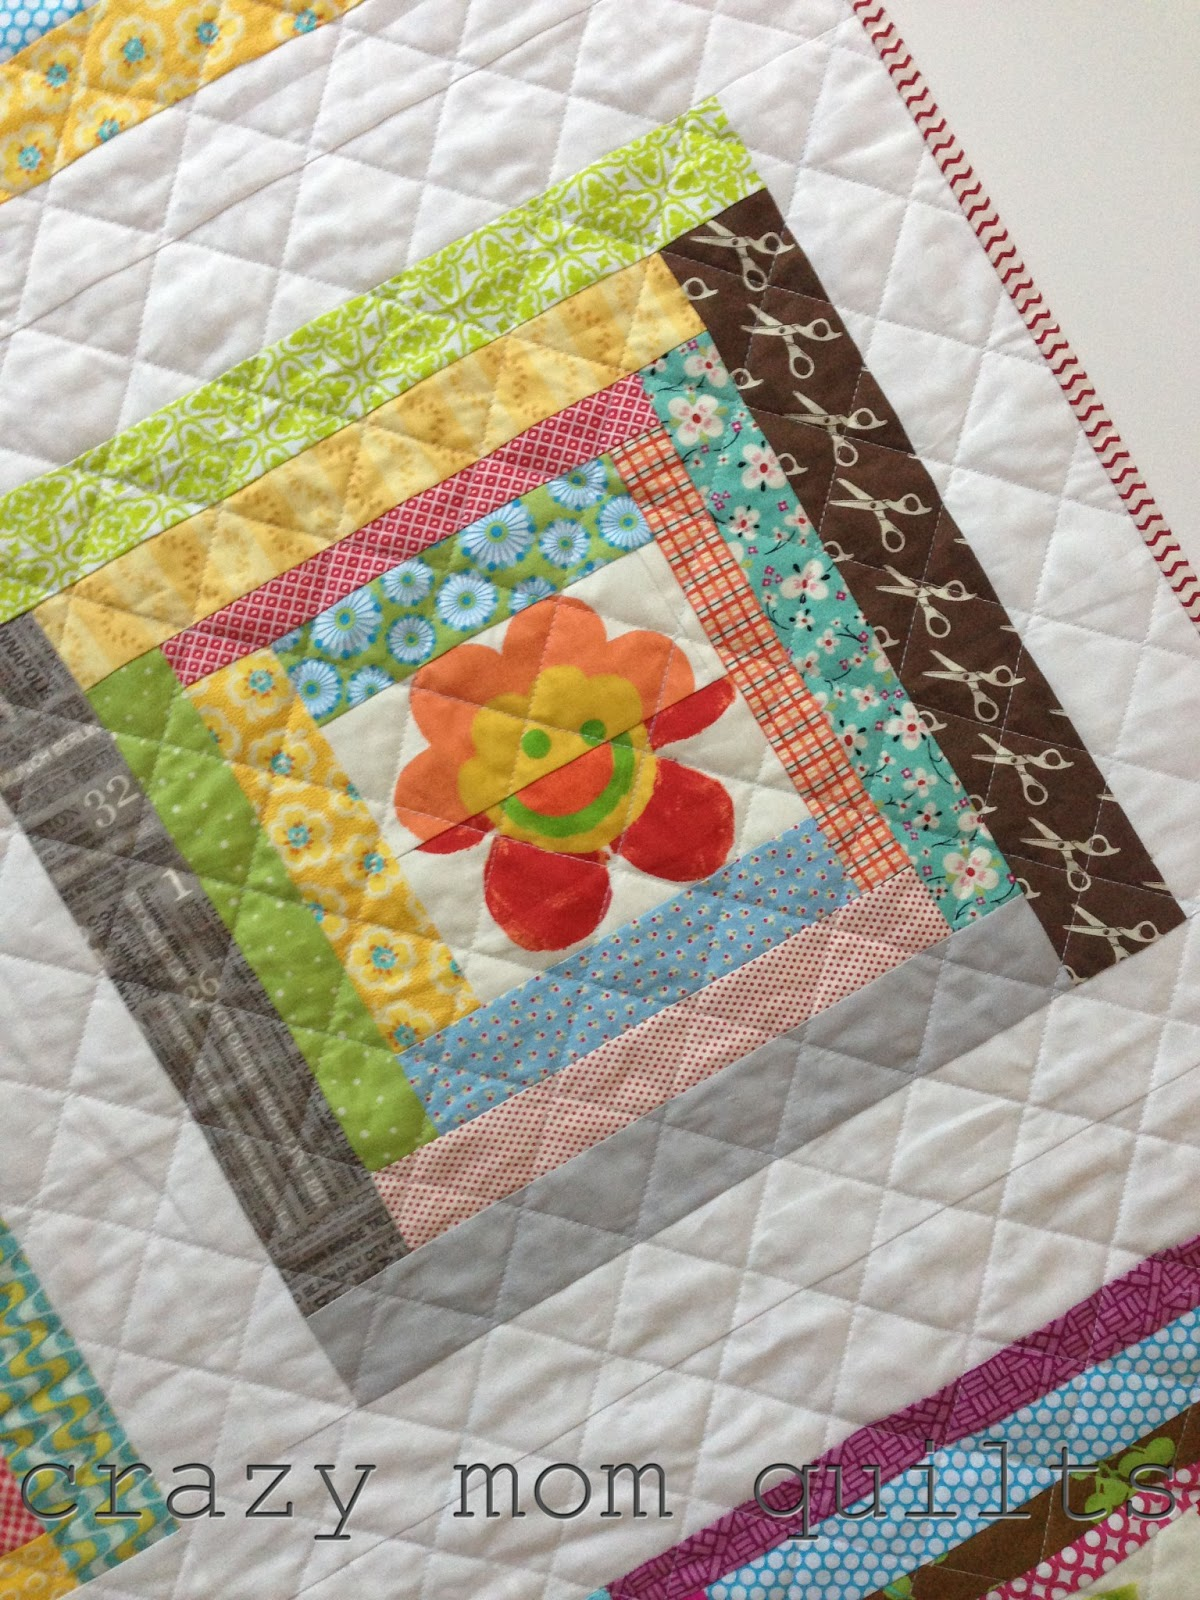 Very Impressive portraiture of crazy mom quilts: wonky log cabin quilt with #9F932C color and 1200x1600 pixels